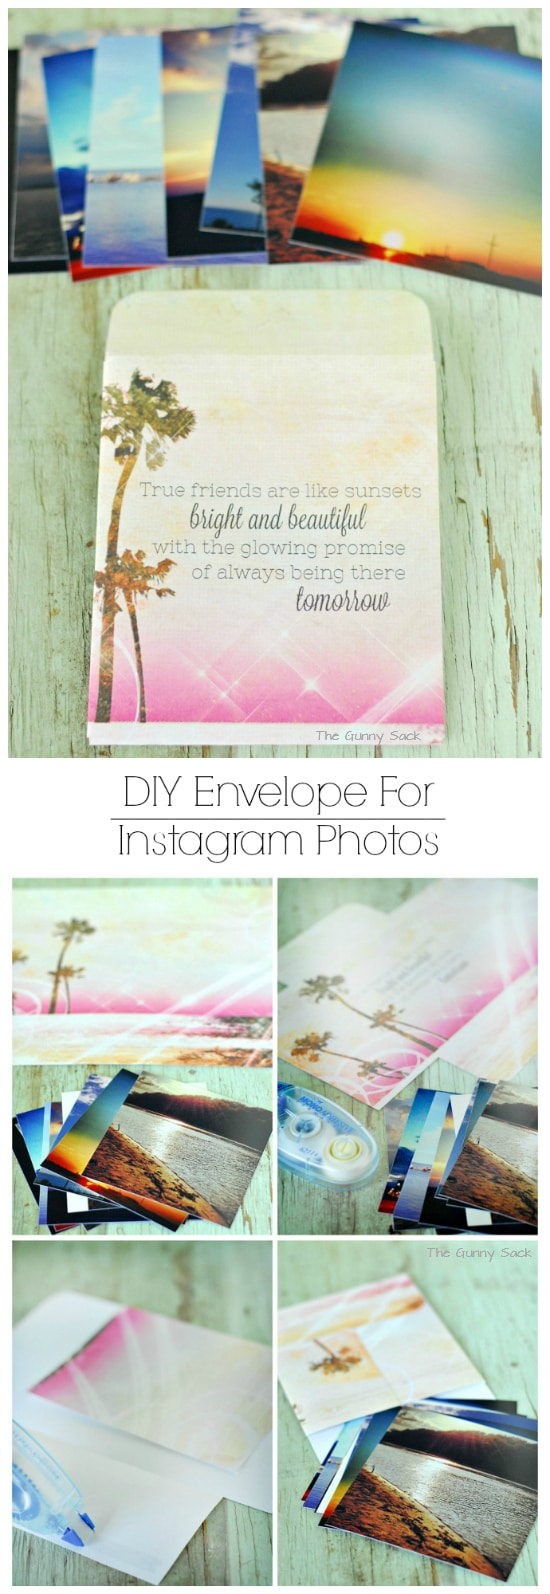 DIY Envelope For Instagram Photos